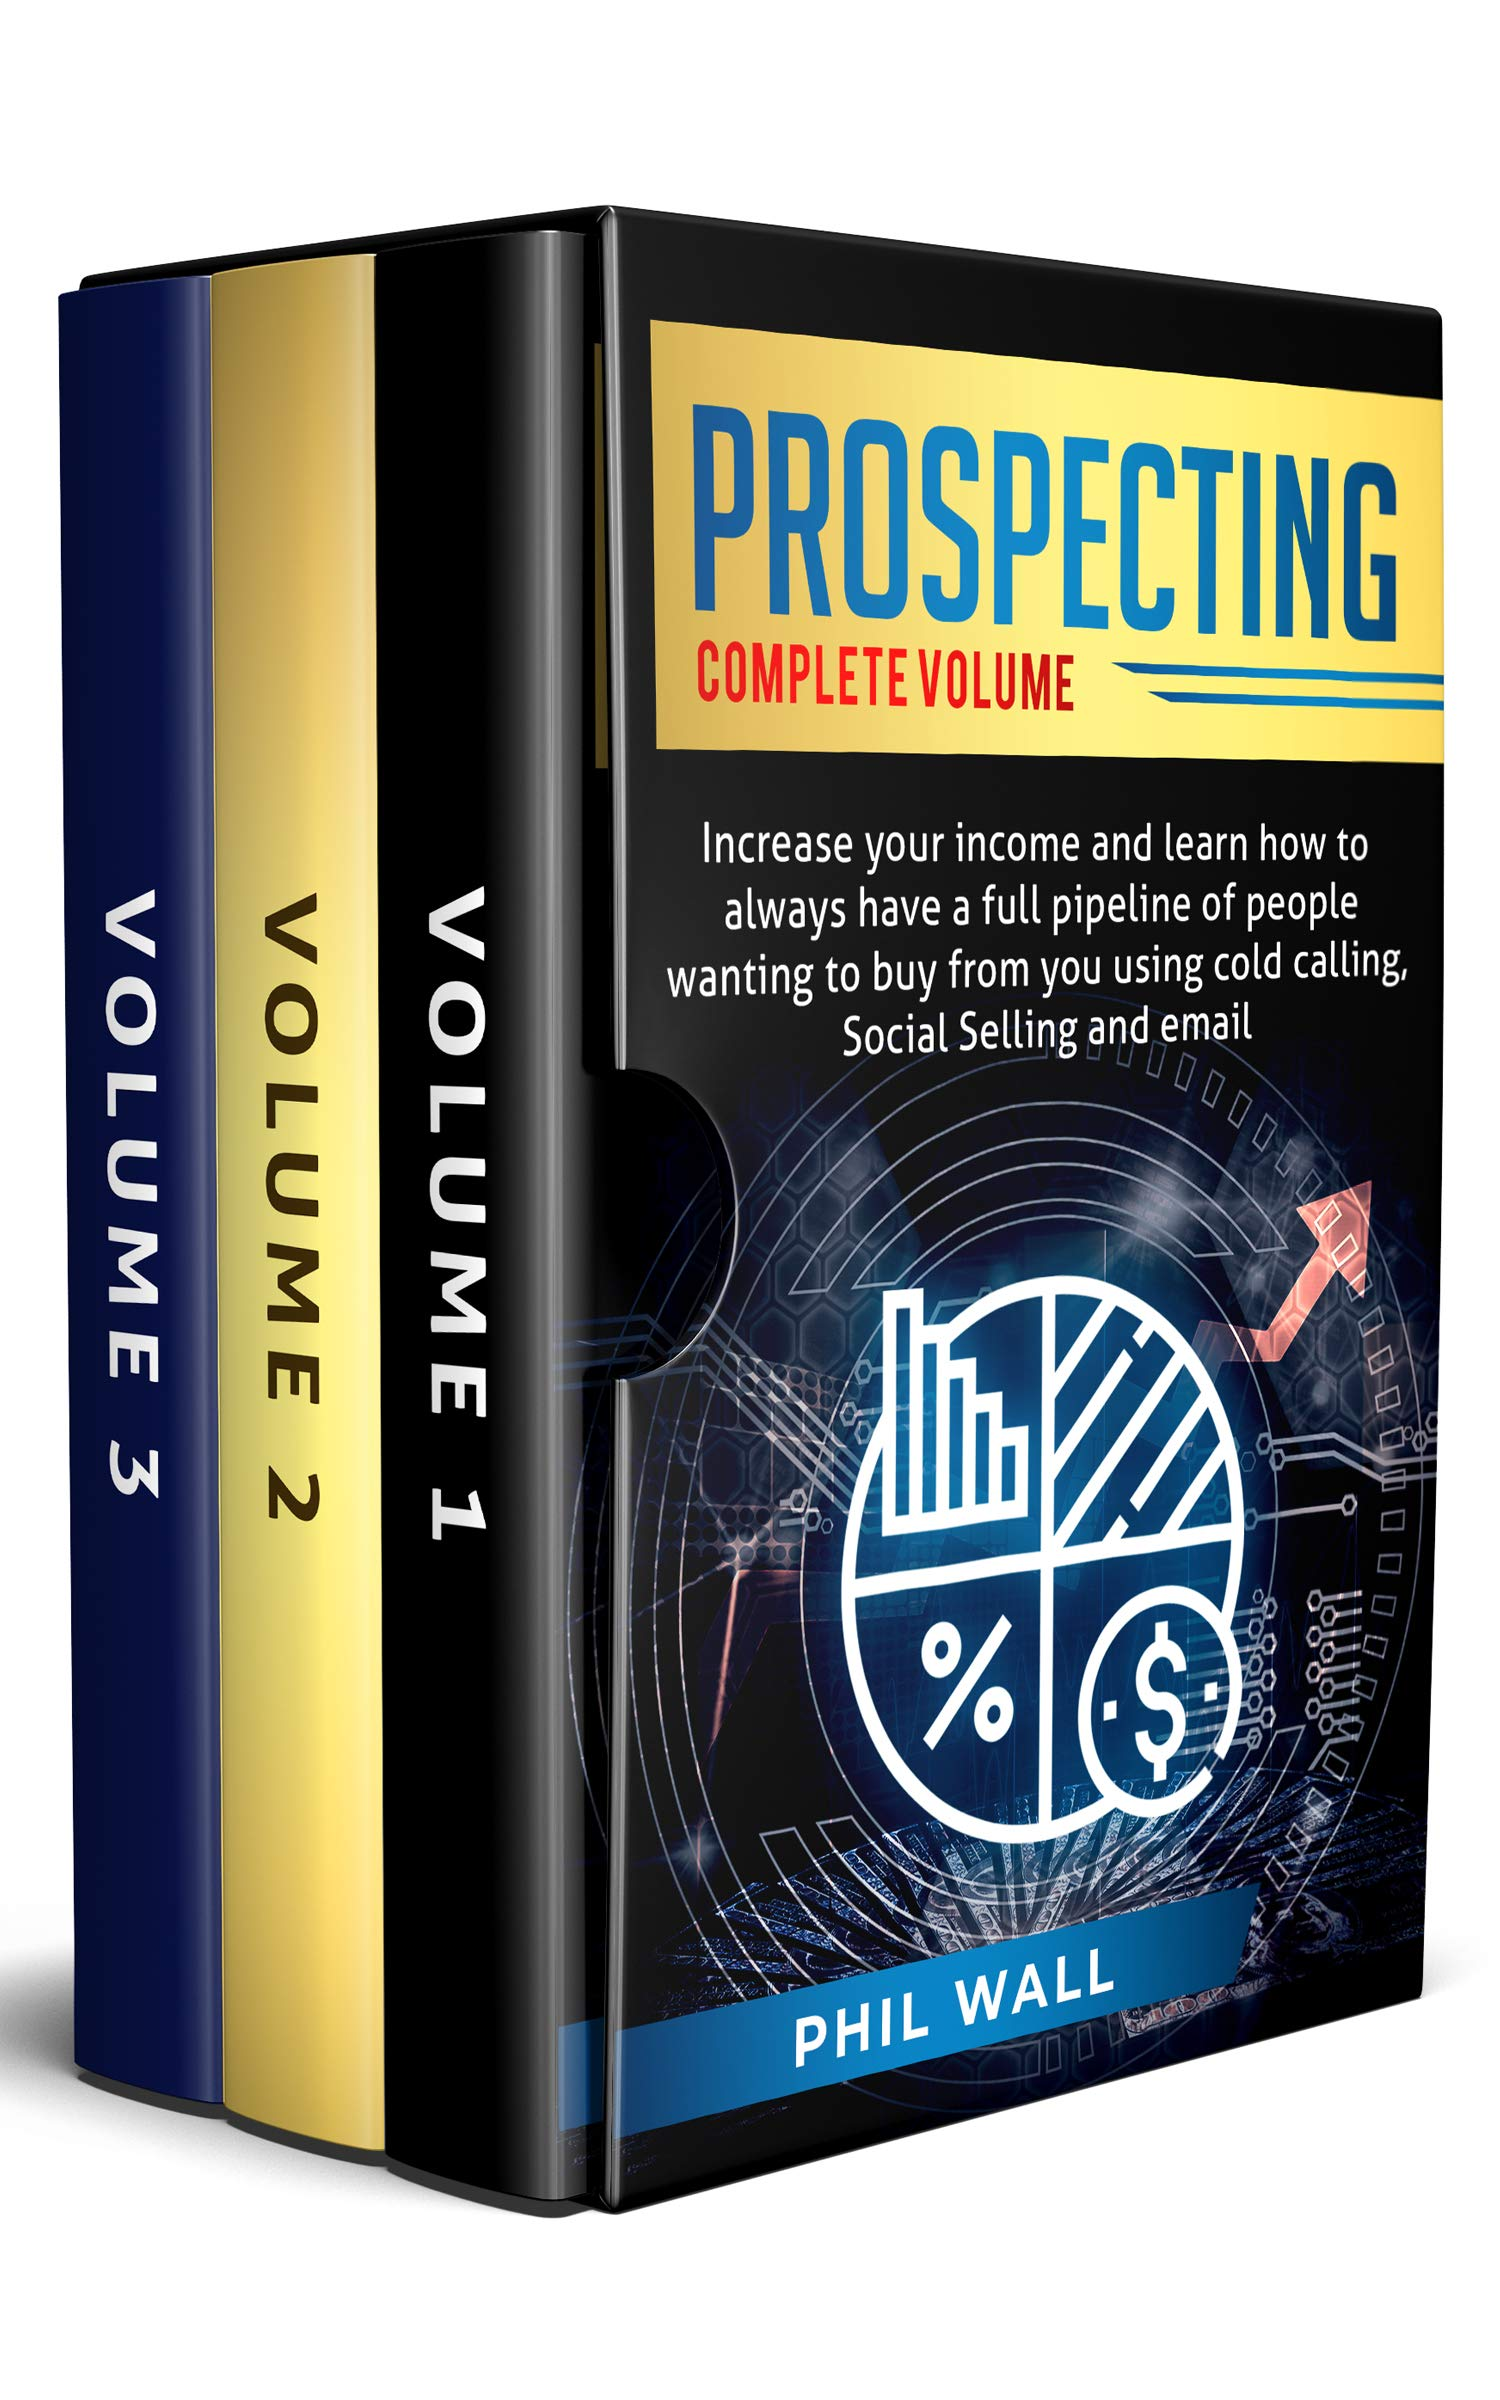 Prospecting: Increase Your Income and Learn How to Always Have a Full Pipeline of People Wanting to Buy from You Using Cold Calling, Social Selling, and Email Complete Volume